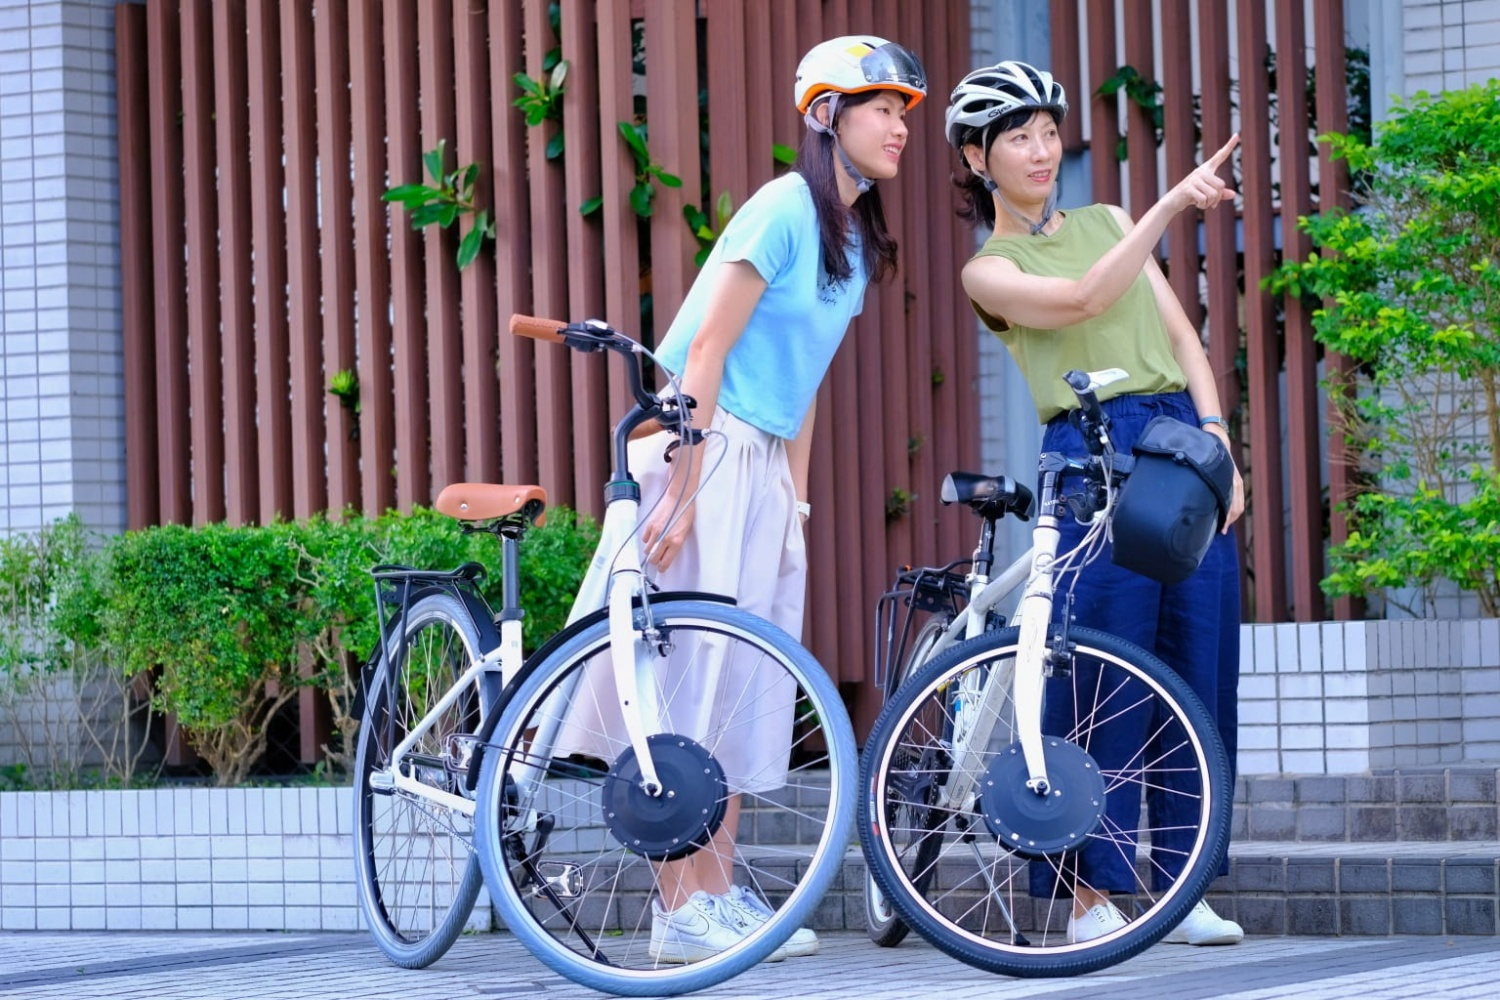 Join the Eco-friendly Mobility Revolution Upgrading Your Old Bike to a Pedelec With E-rim